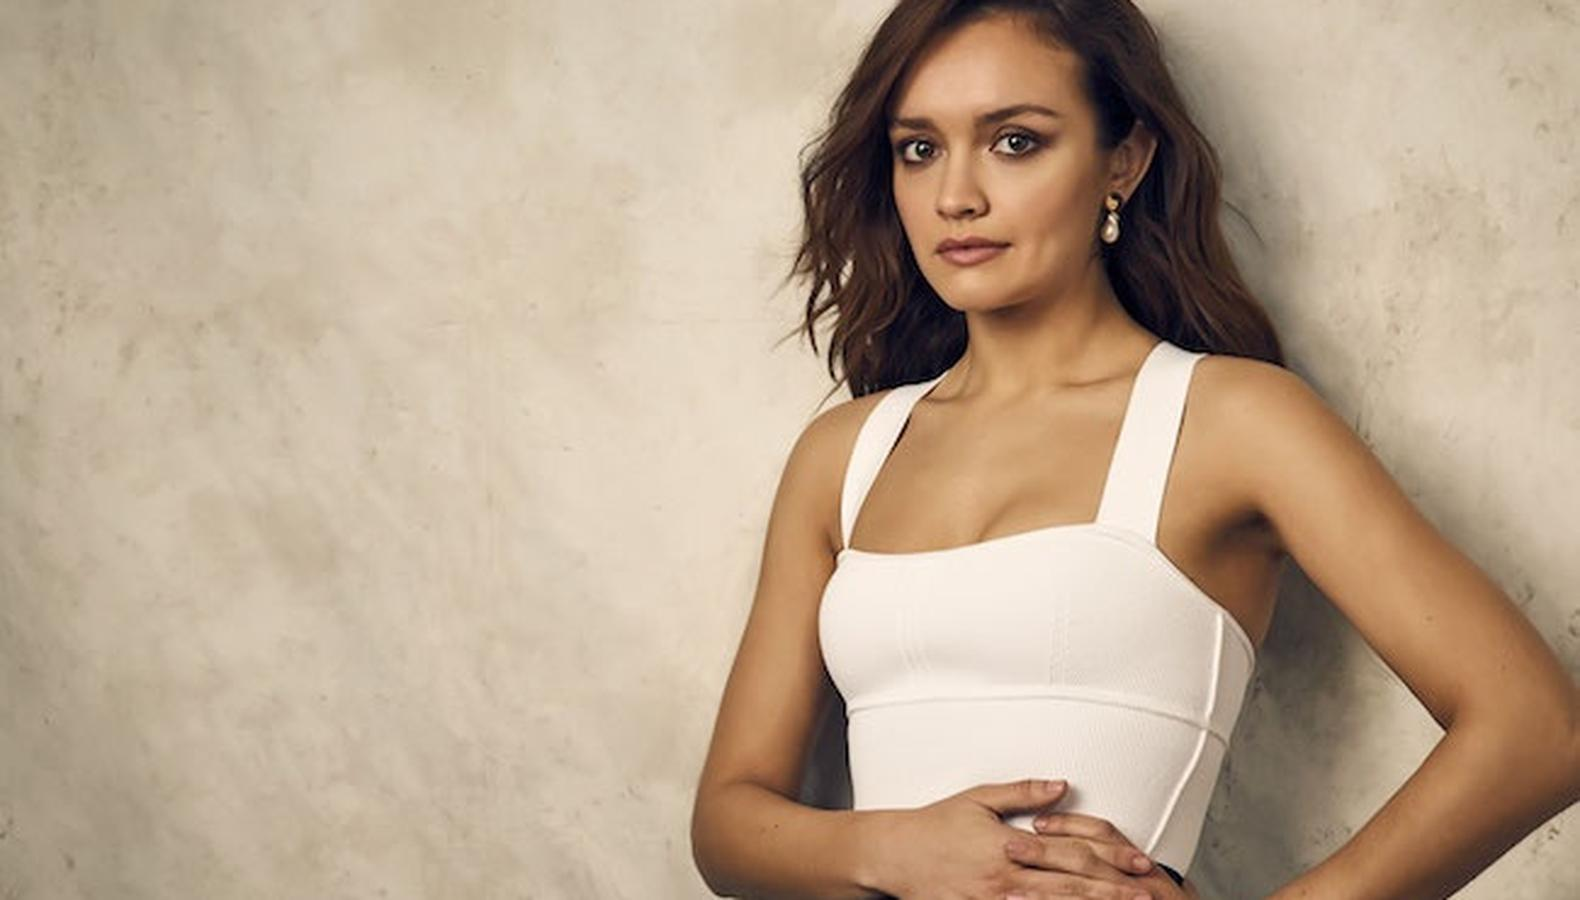 olivia-cooke-bio-wiki-age-education-dating-height-weight-career-net-worth